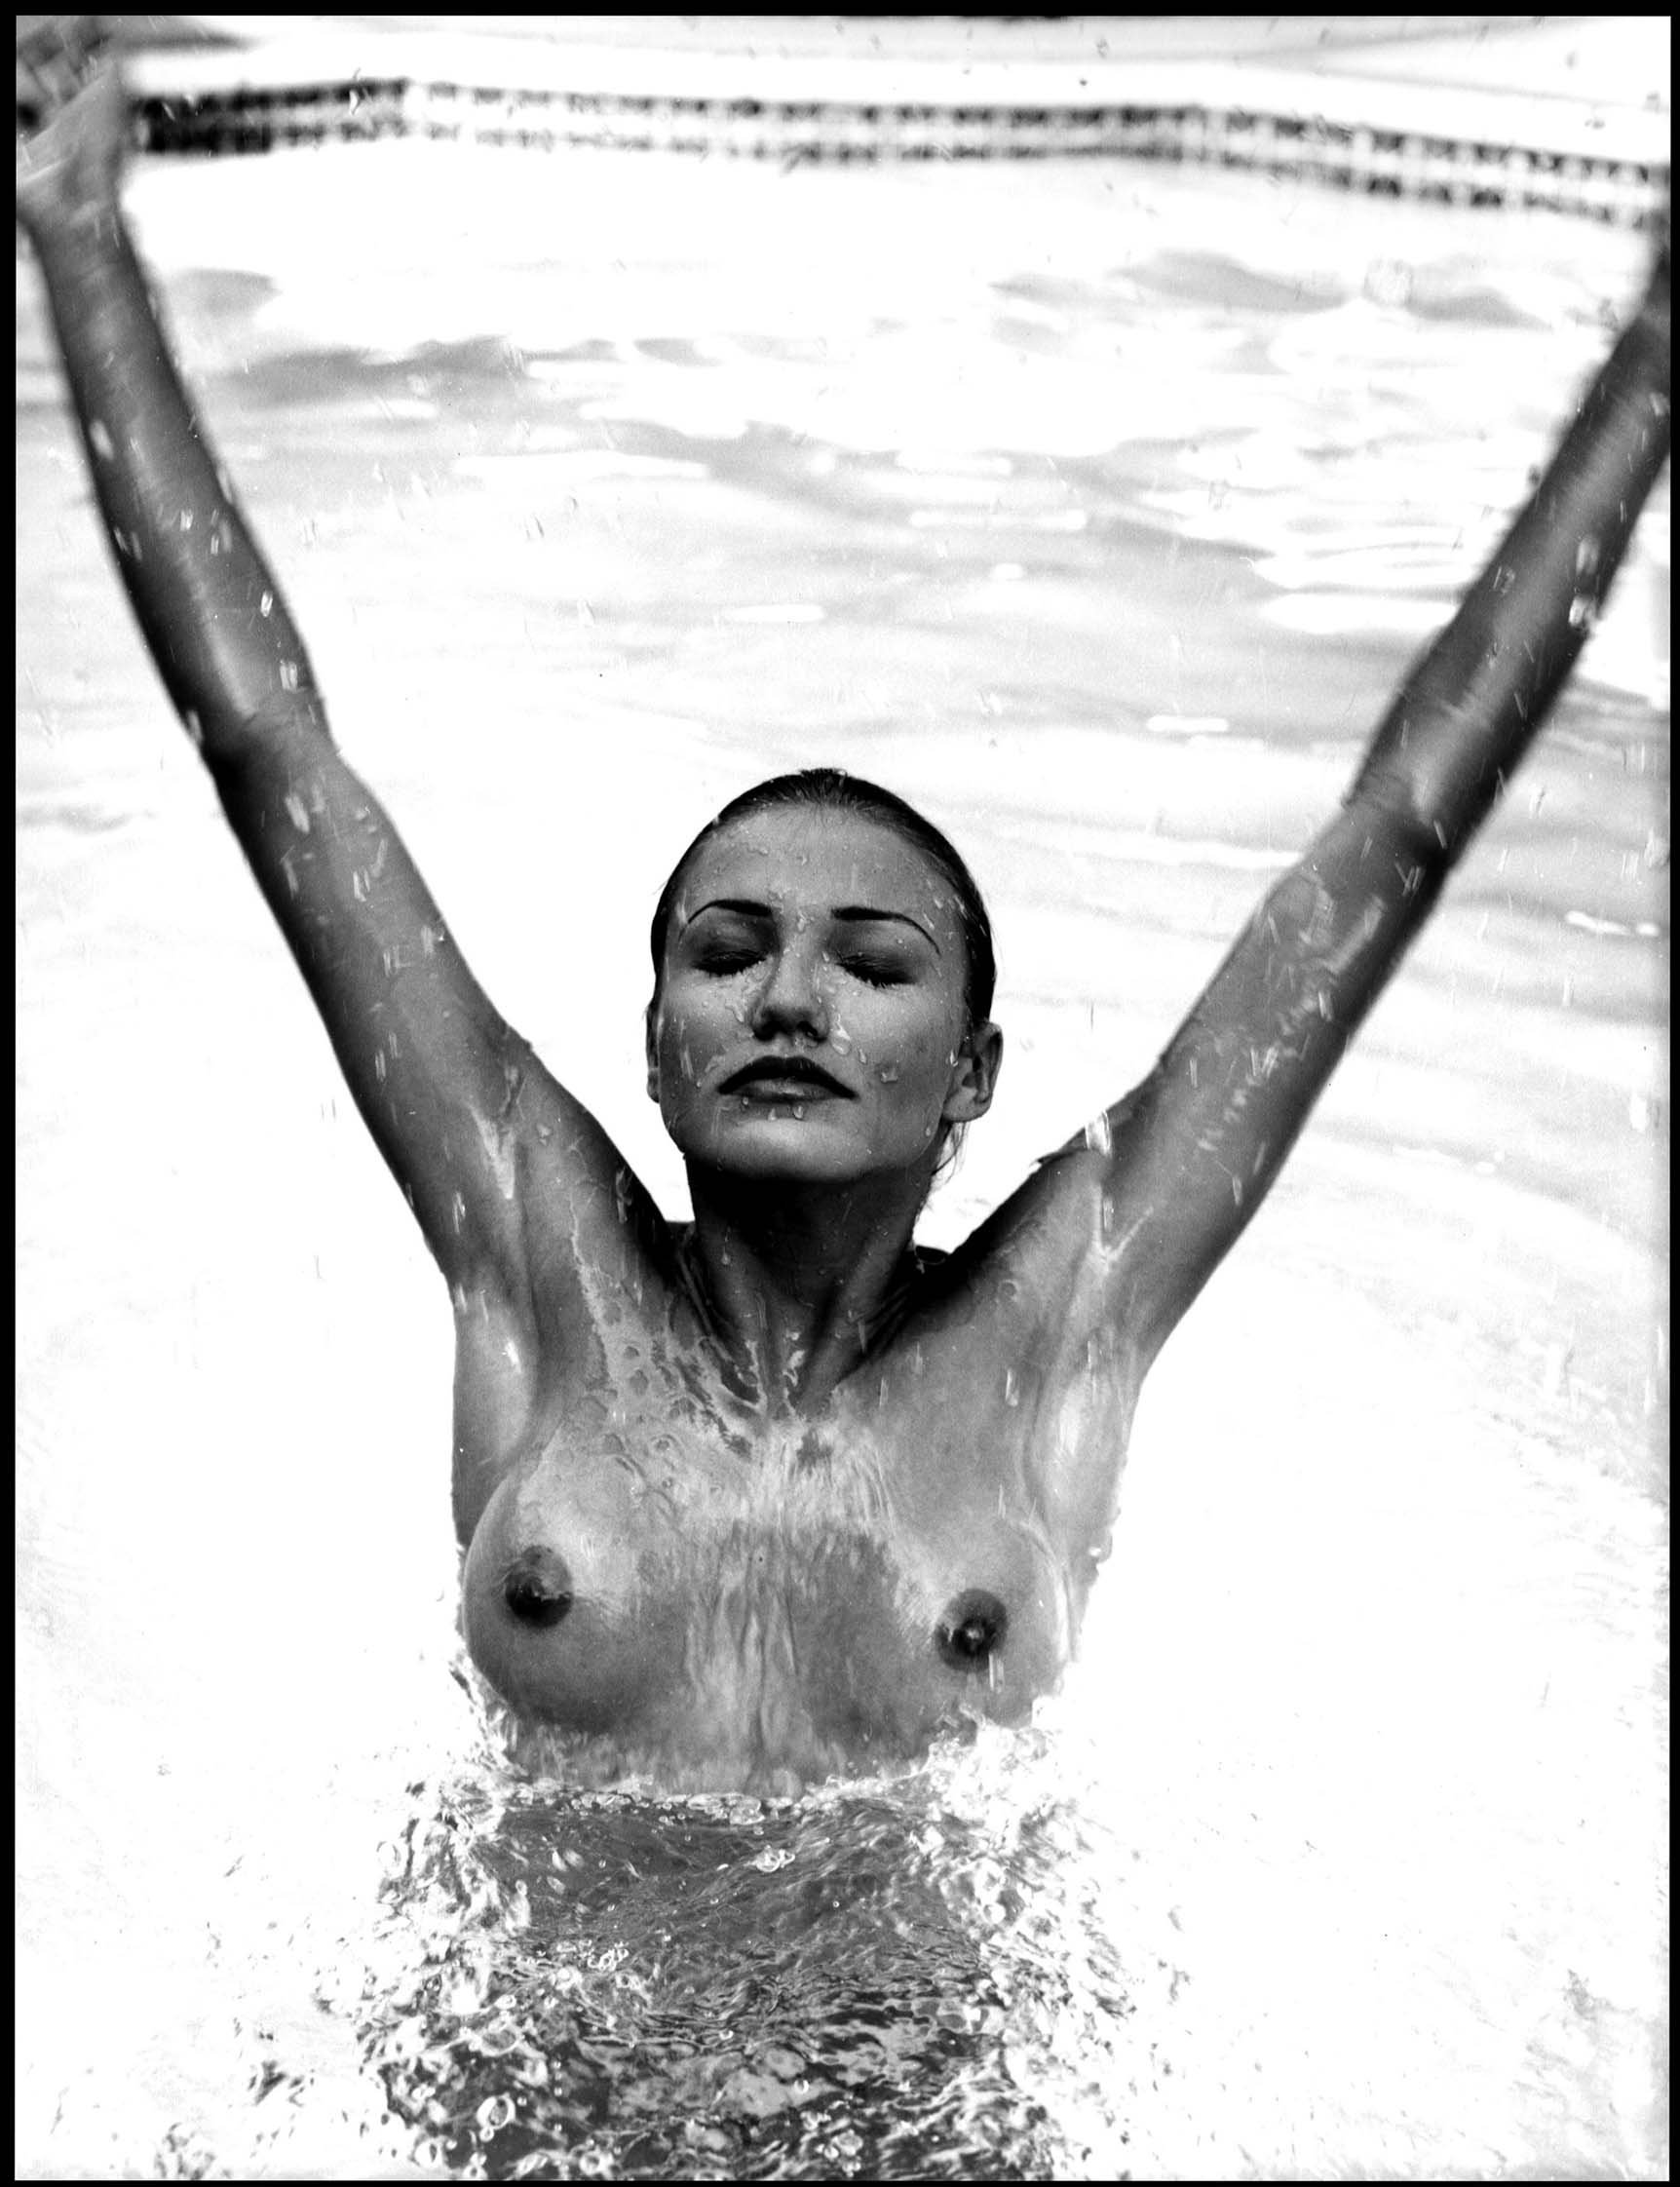 55403_Cameron_Diaz_-_Topless_photoshoot_in_a_swimming_pool0005_123_1169lo.jpg